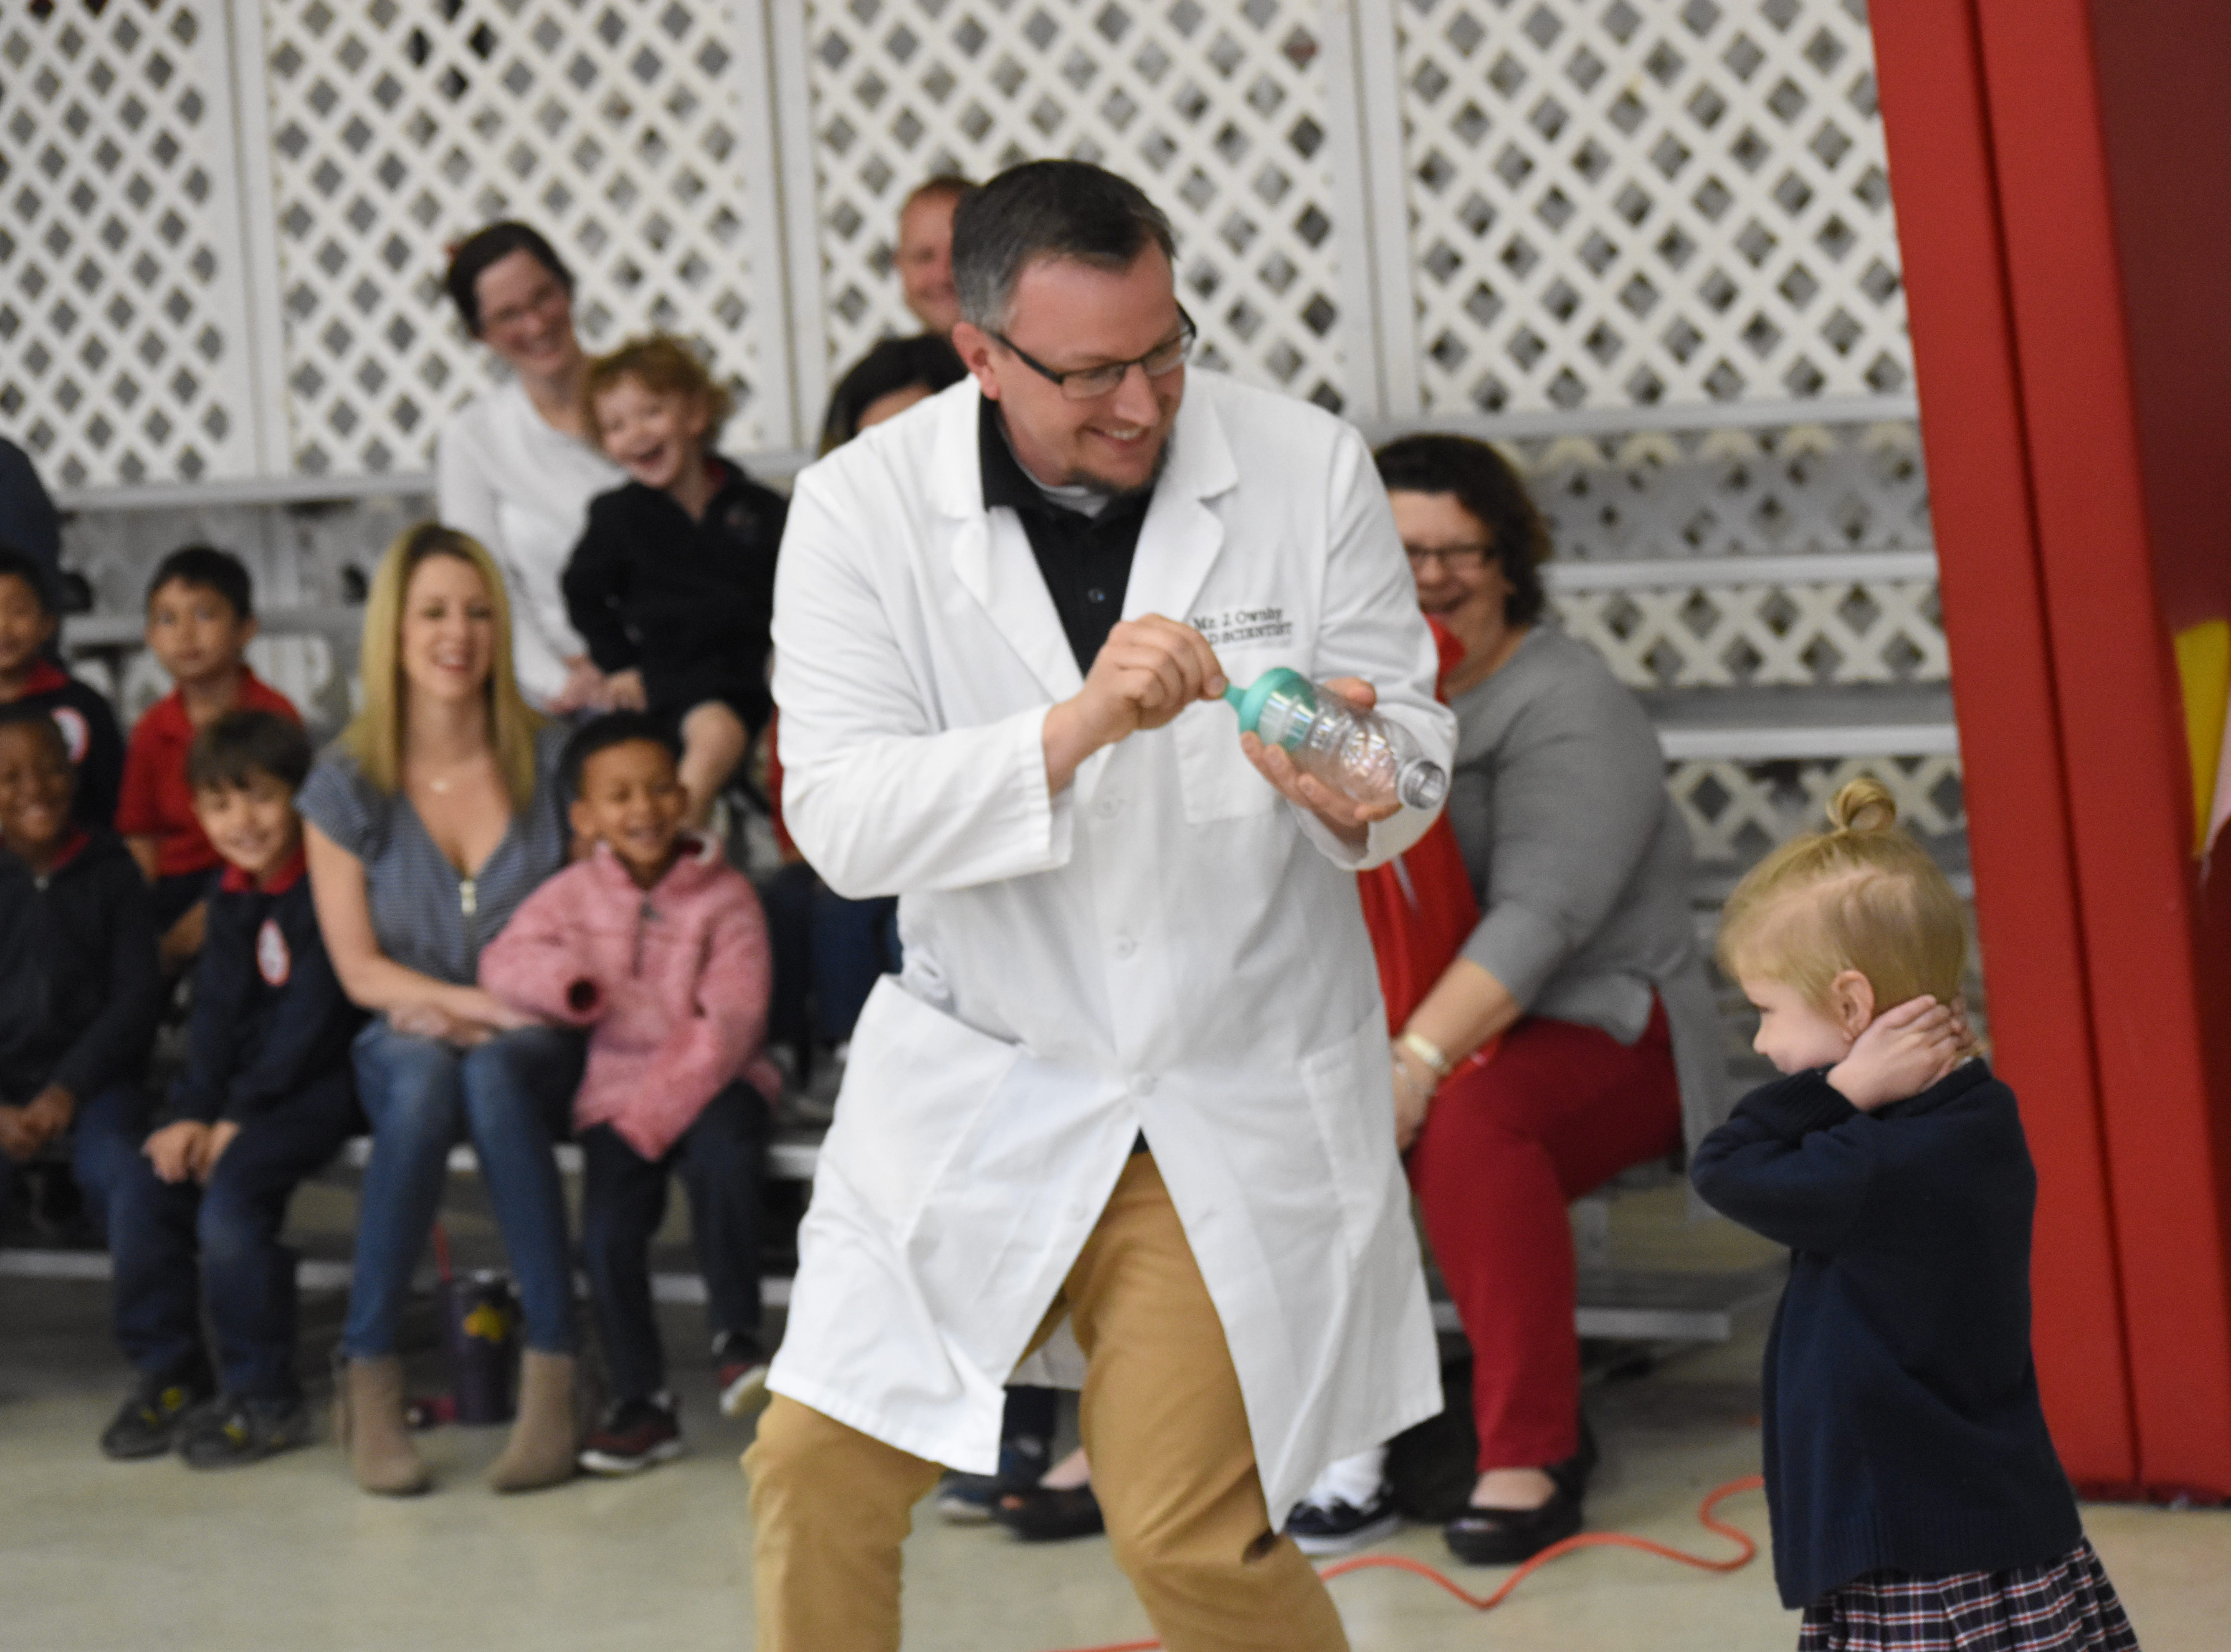 Jonathon Ownby of the Cyber Innovation Center based in Bossier City, conducts experiments using air and everyday objects for pre-Kindergarten and Kindergarten students at St. Frances Cabrini School. The experiments ere part of the National Integrated Cyber Education Research Center's STEAM Day which offers interactive presentations for students to see how objects around them can be used for science. The NICER offered three presentations at the school for all the students.